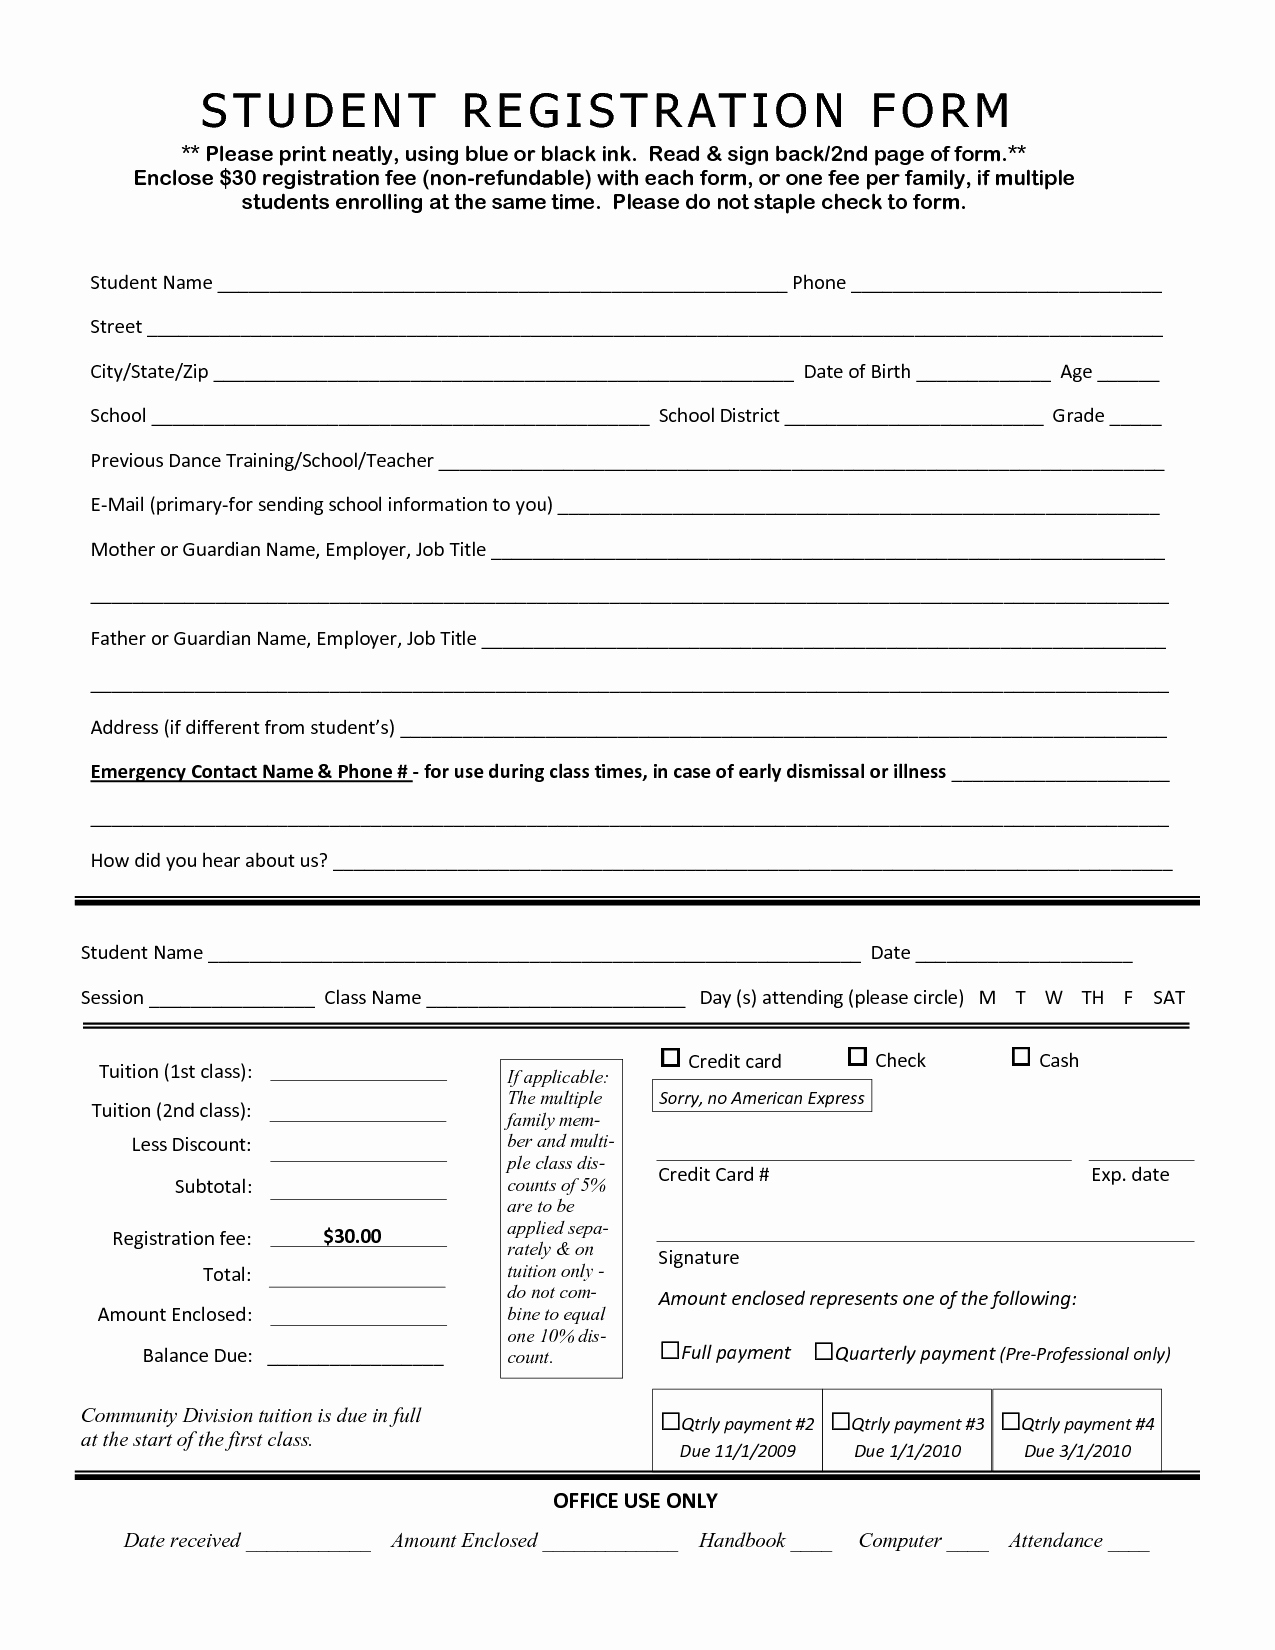 Student Application form Template Portablegasgrillweber